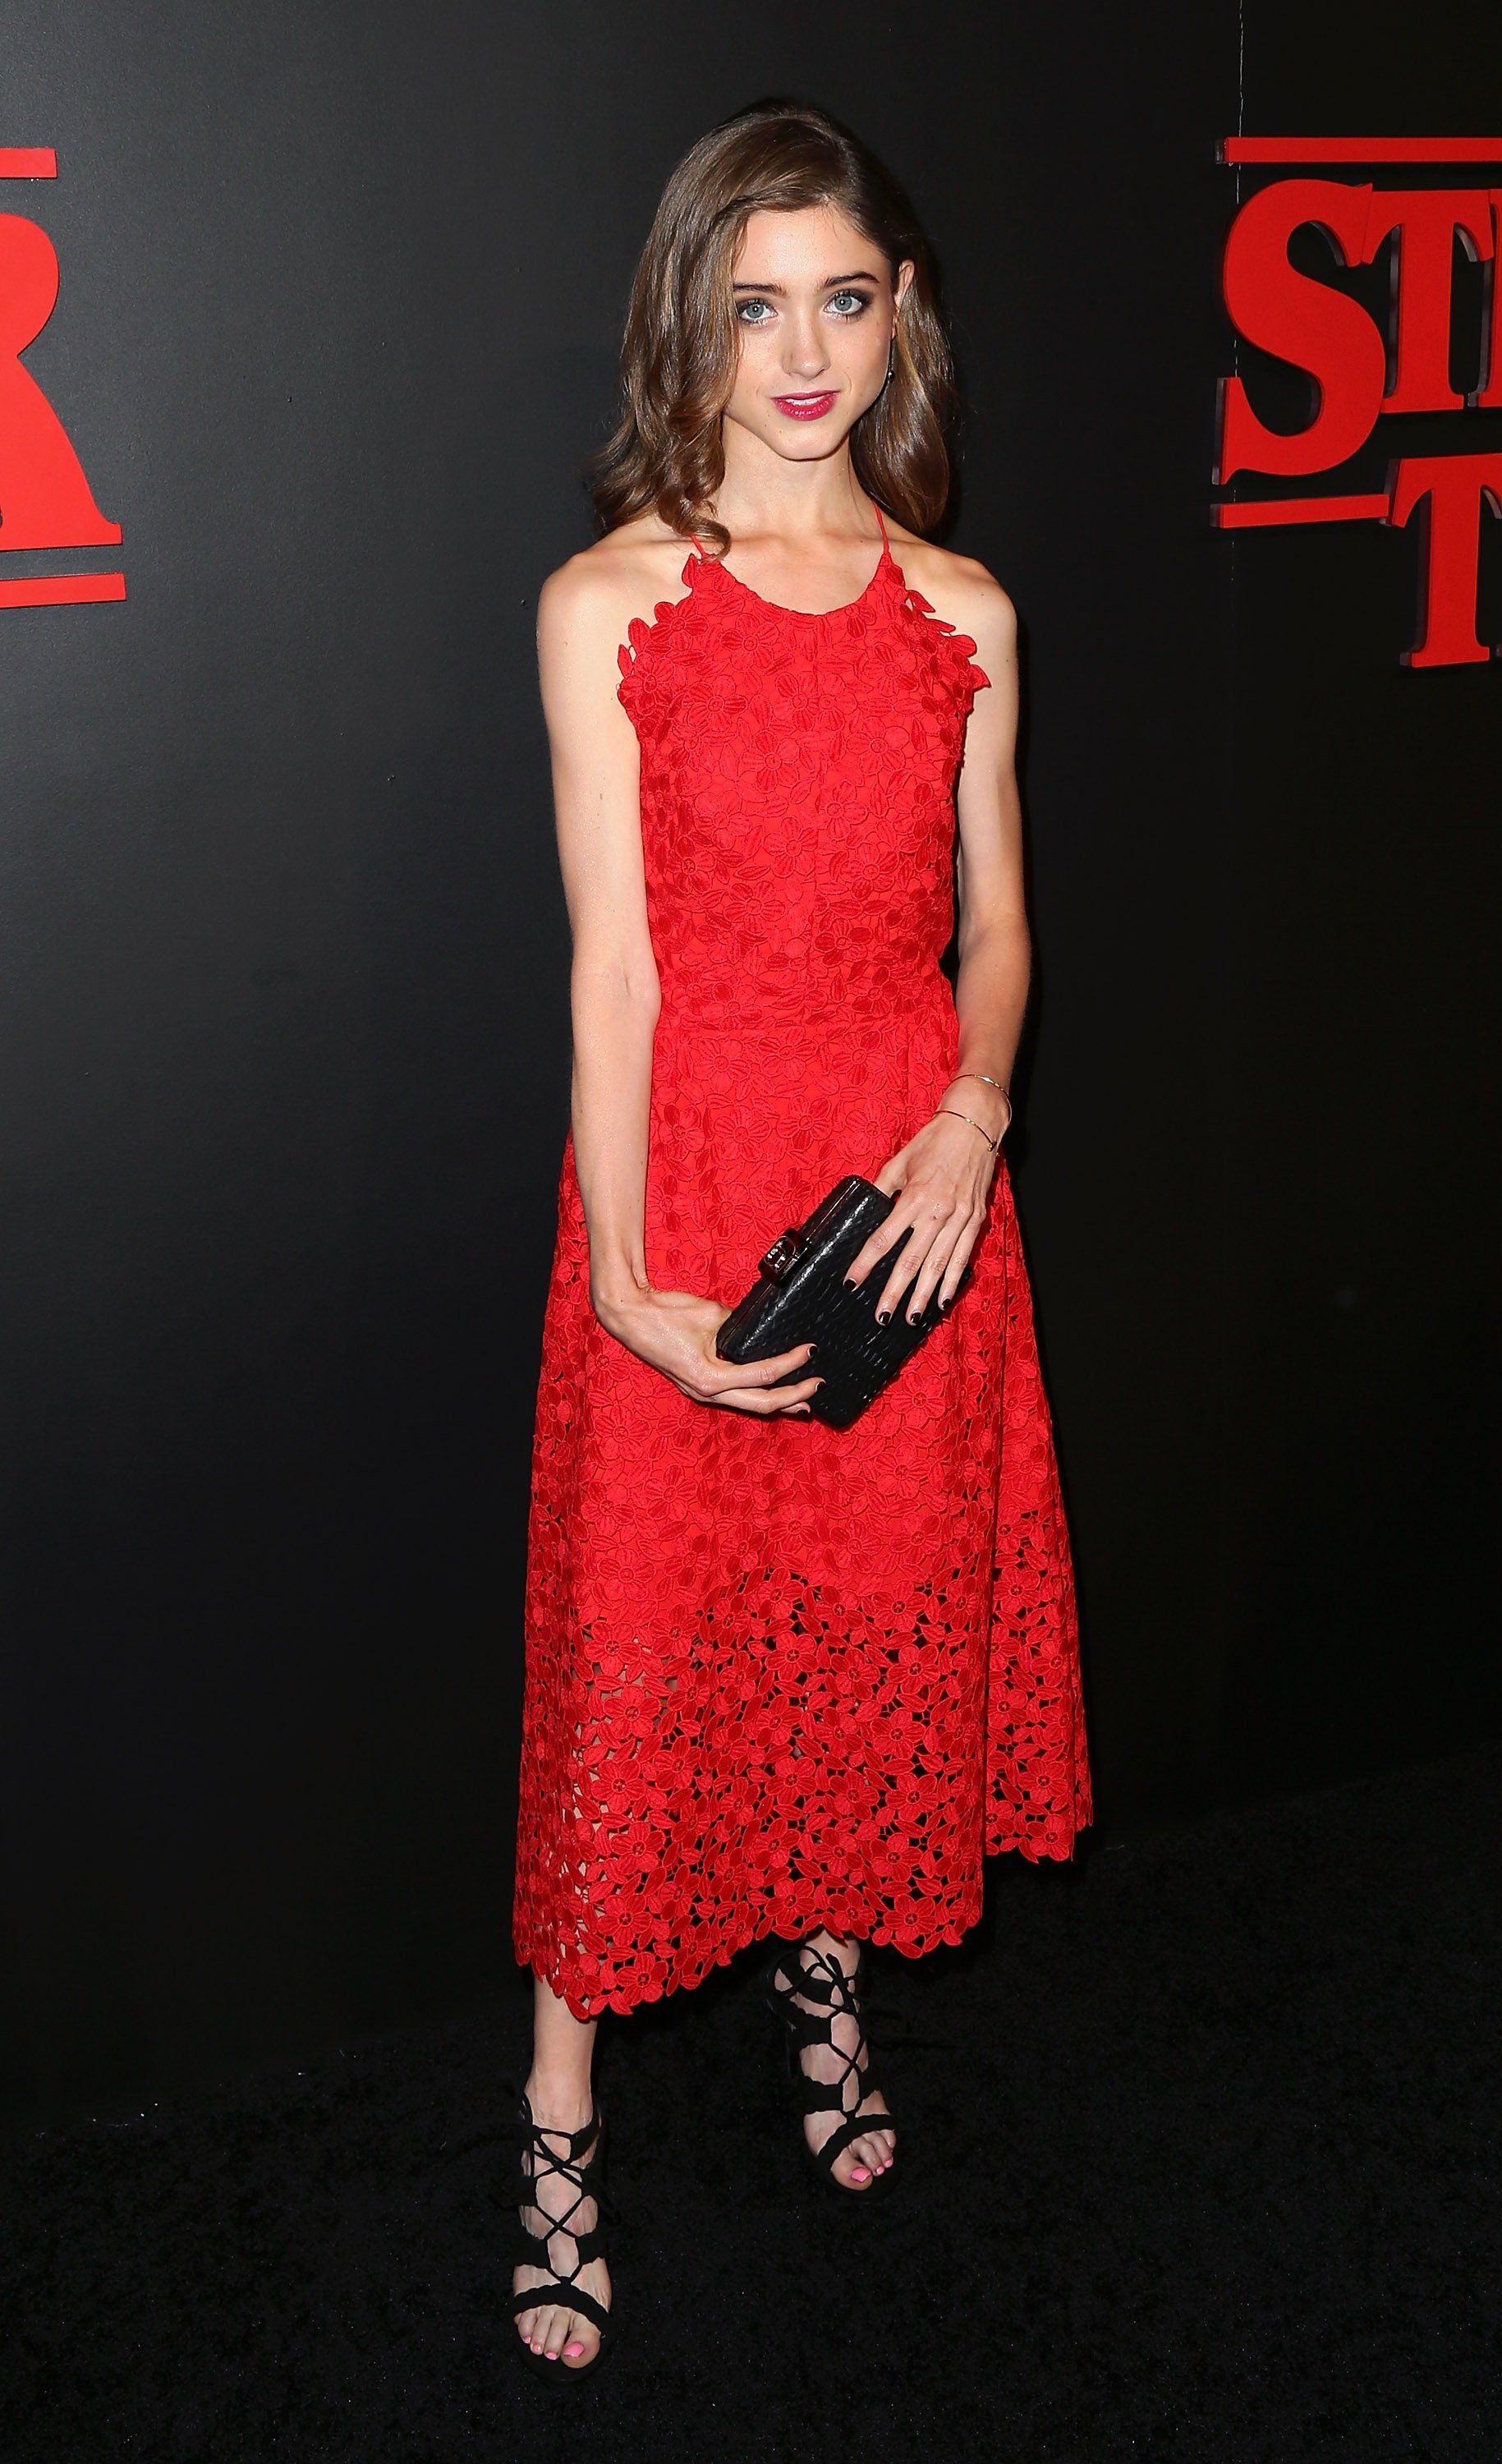 Natalia Pulled Off a Red Floral Midi With Caged Sandals | elegance